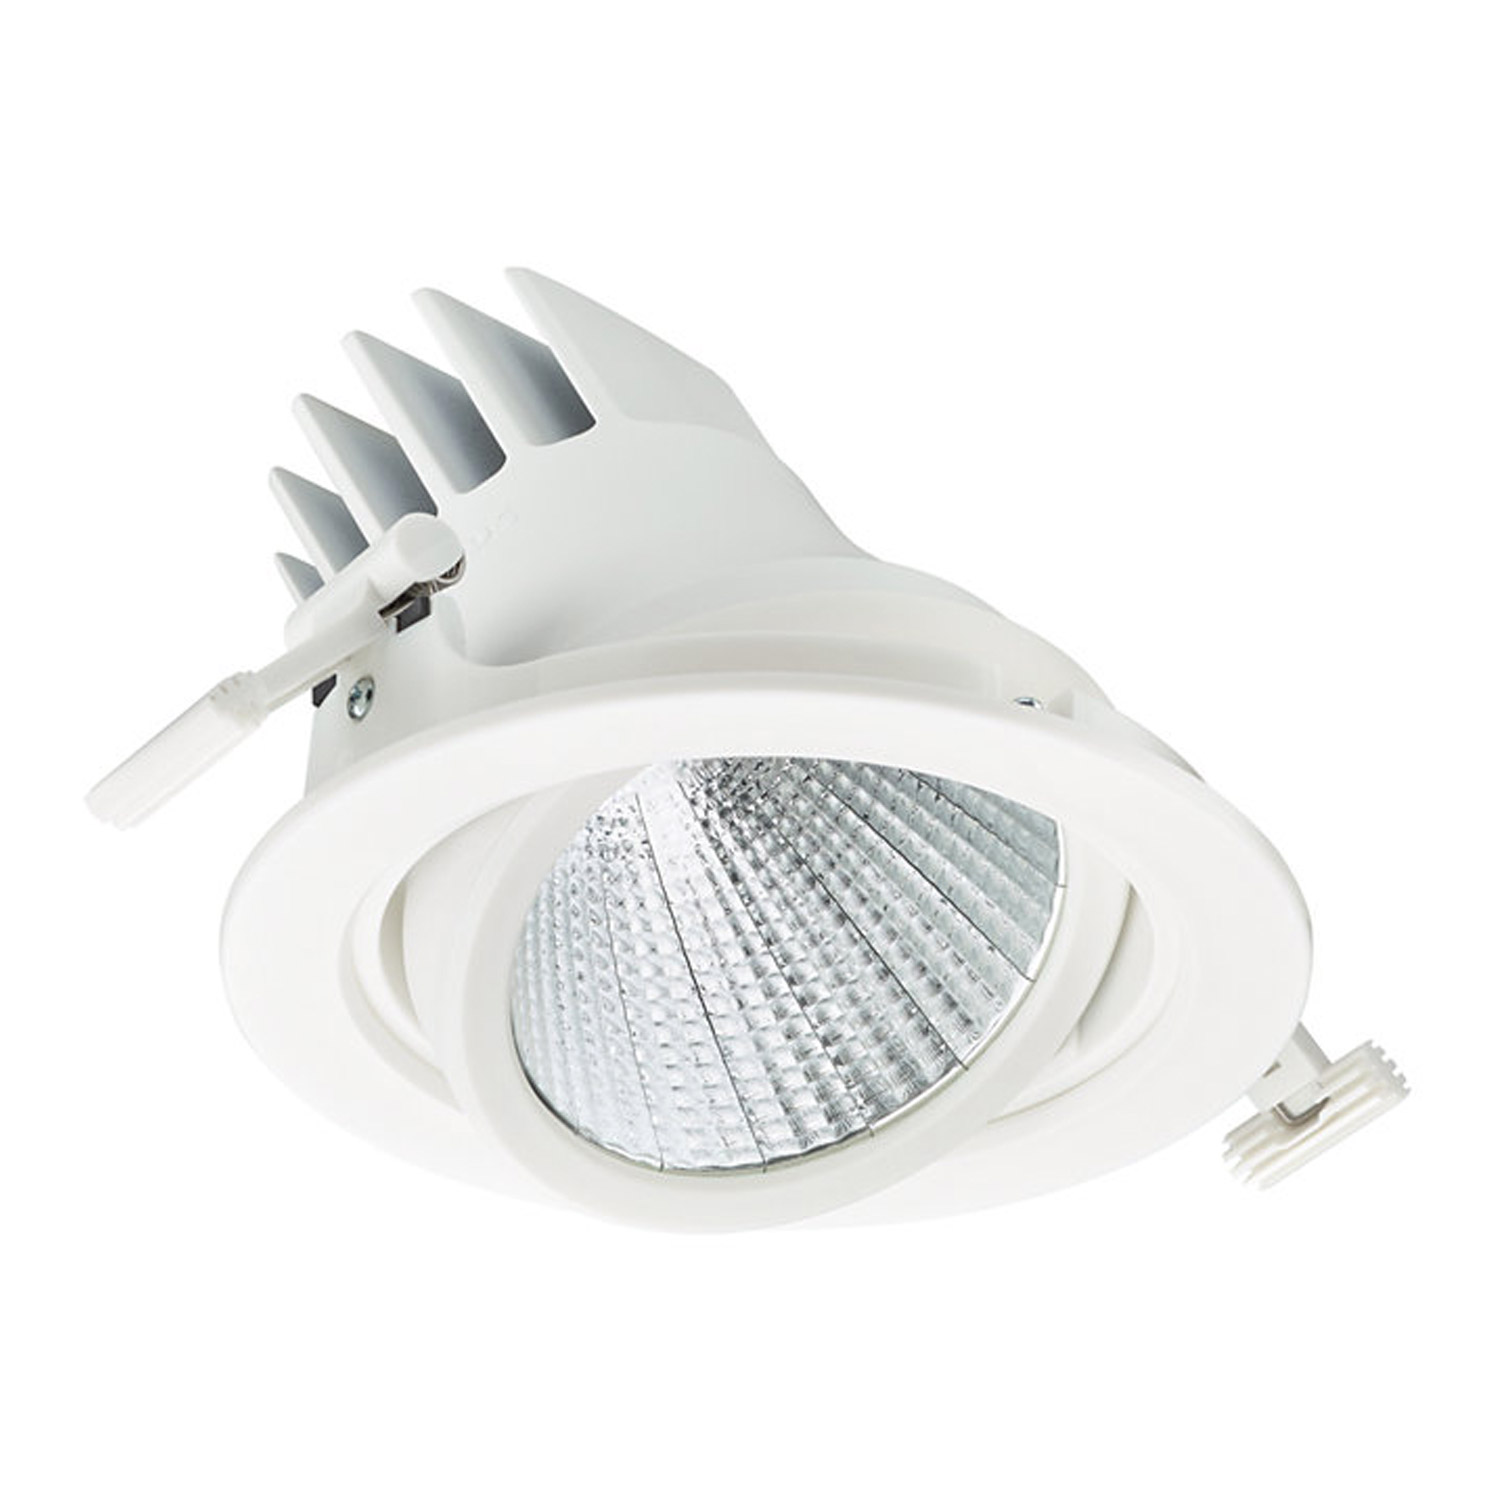 Philips LuxSpace Accent Performance LED Spot RS781B 32W 930 3900lm - Warm White